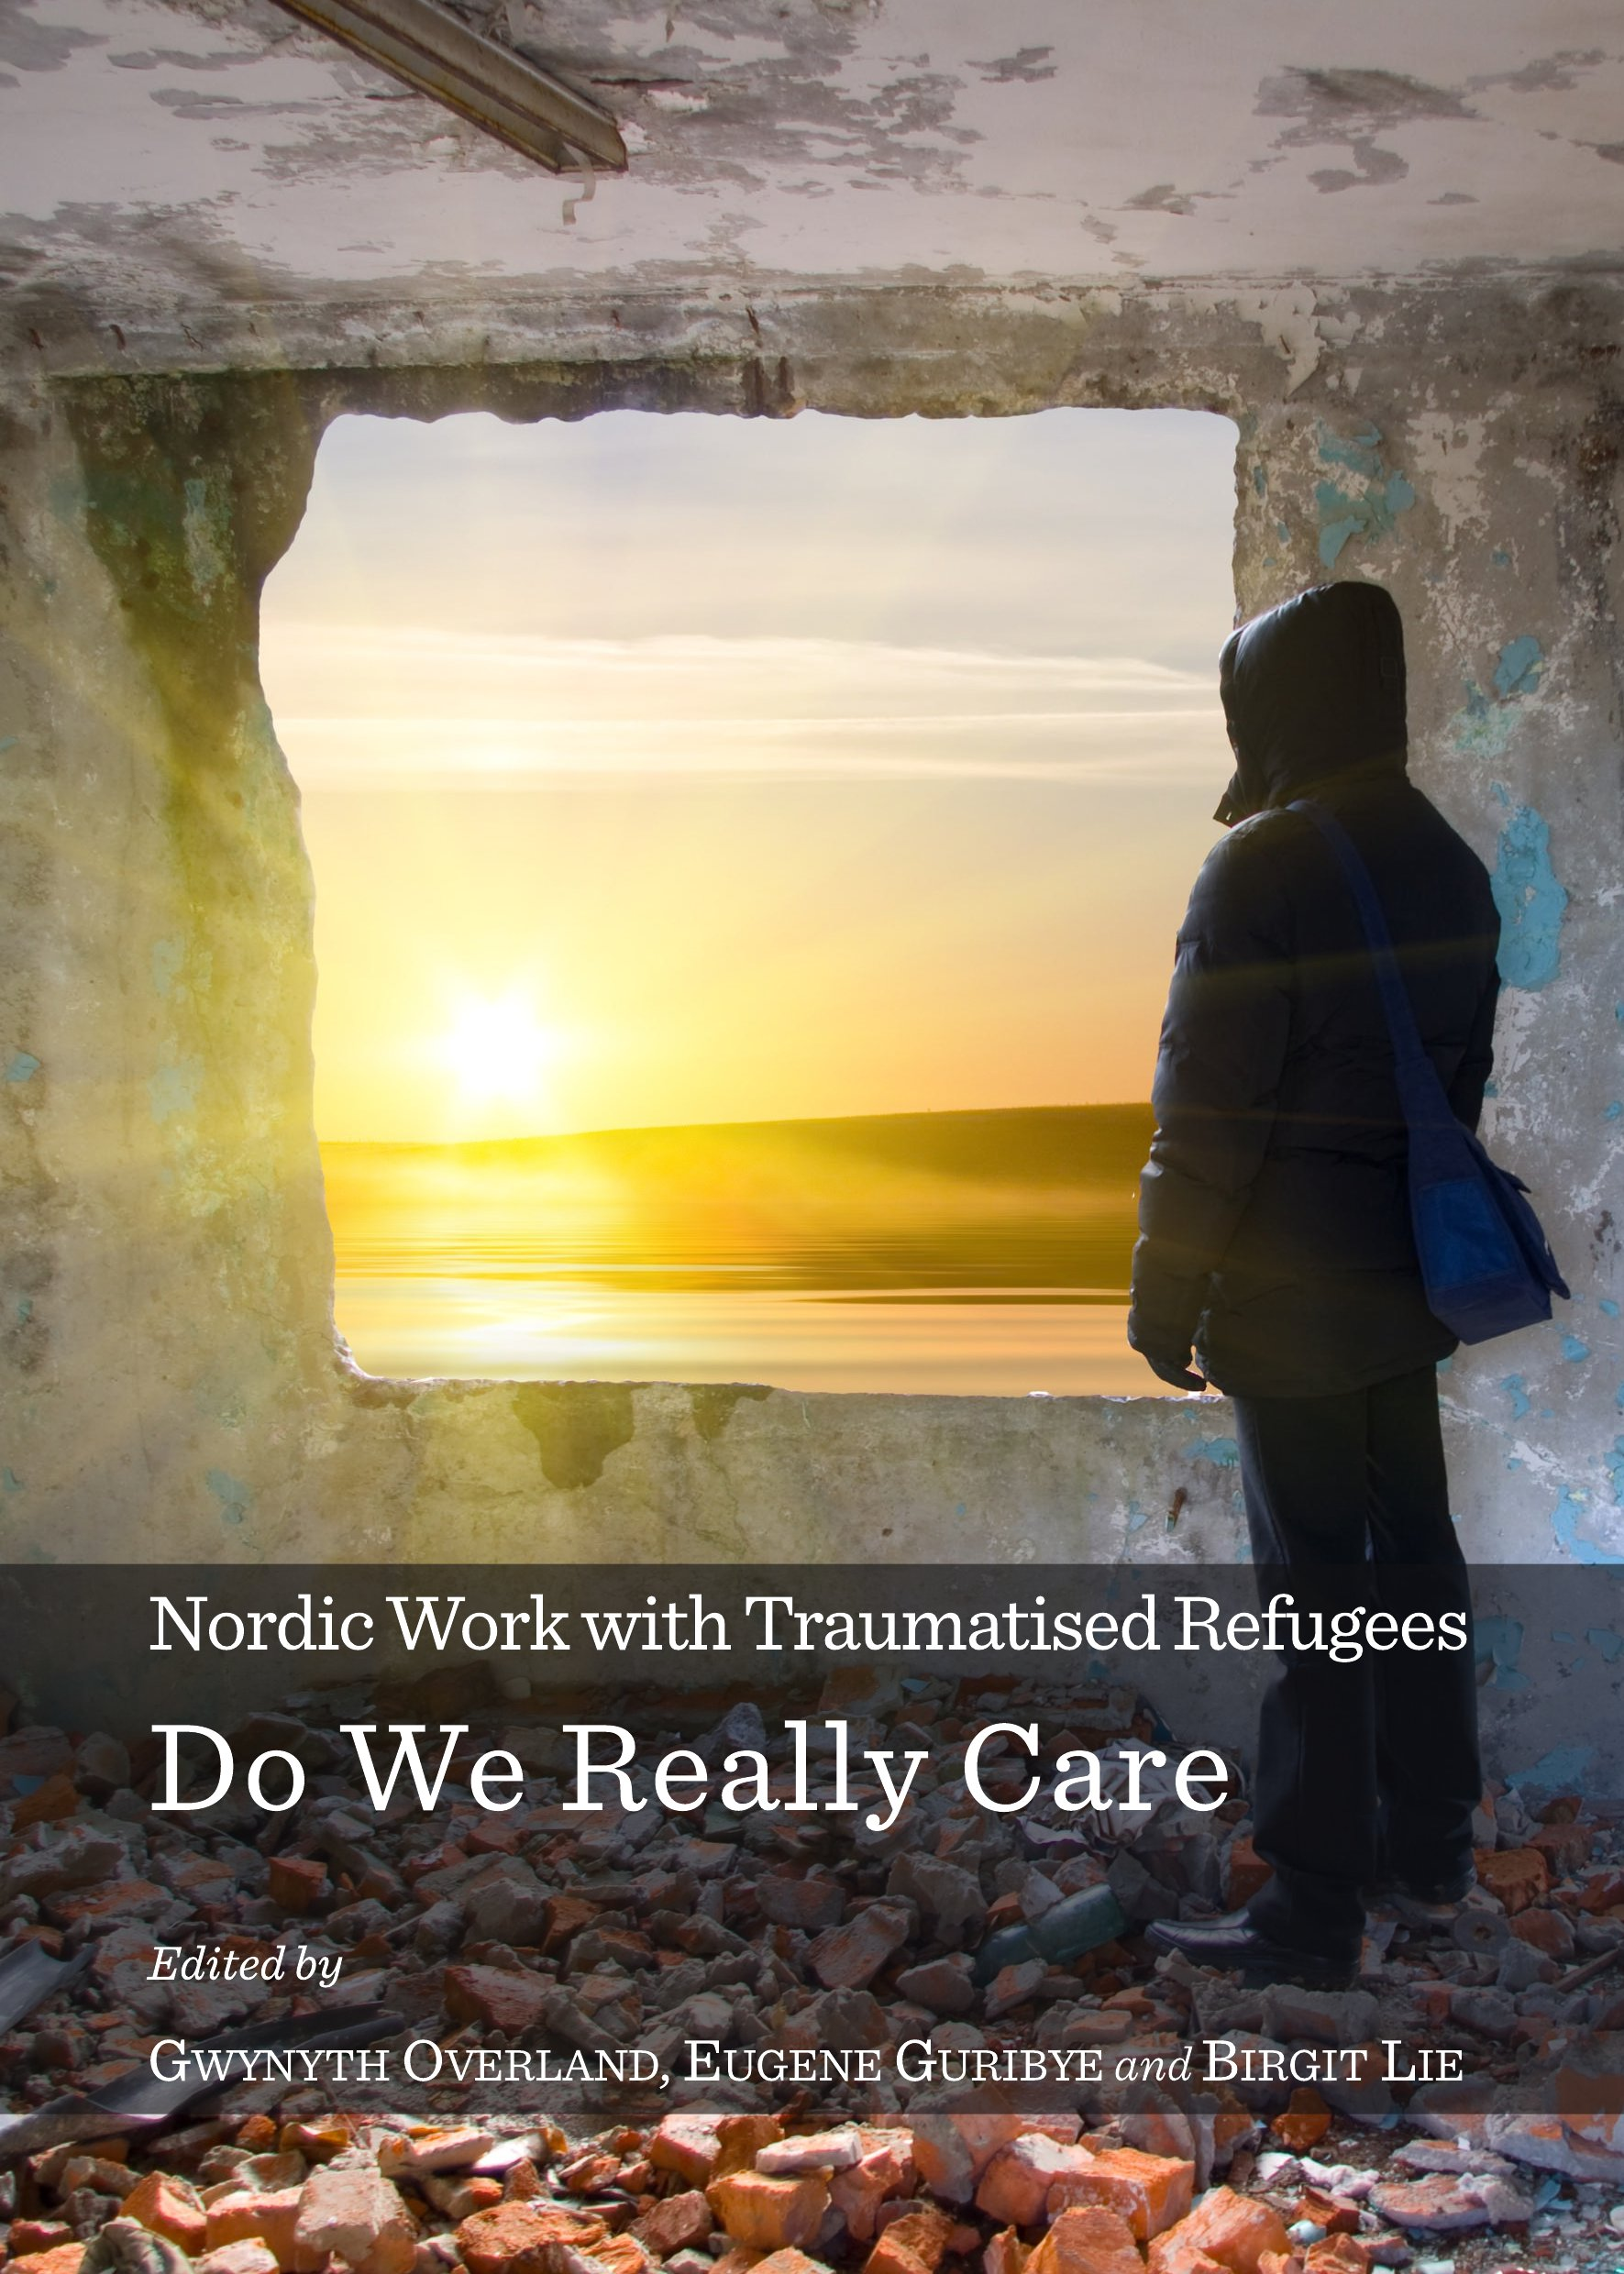 Nordic Work with Traumatised Refugees: Do We Really Care